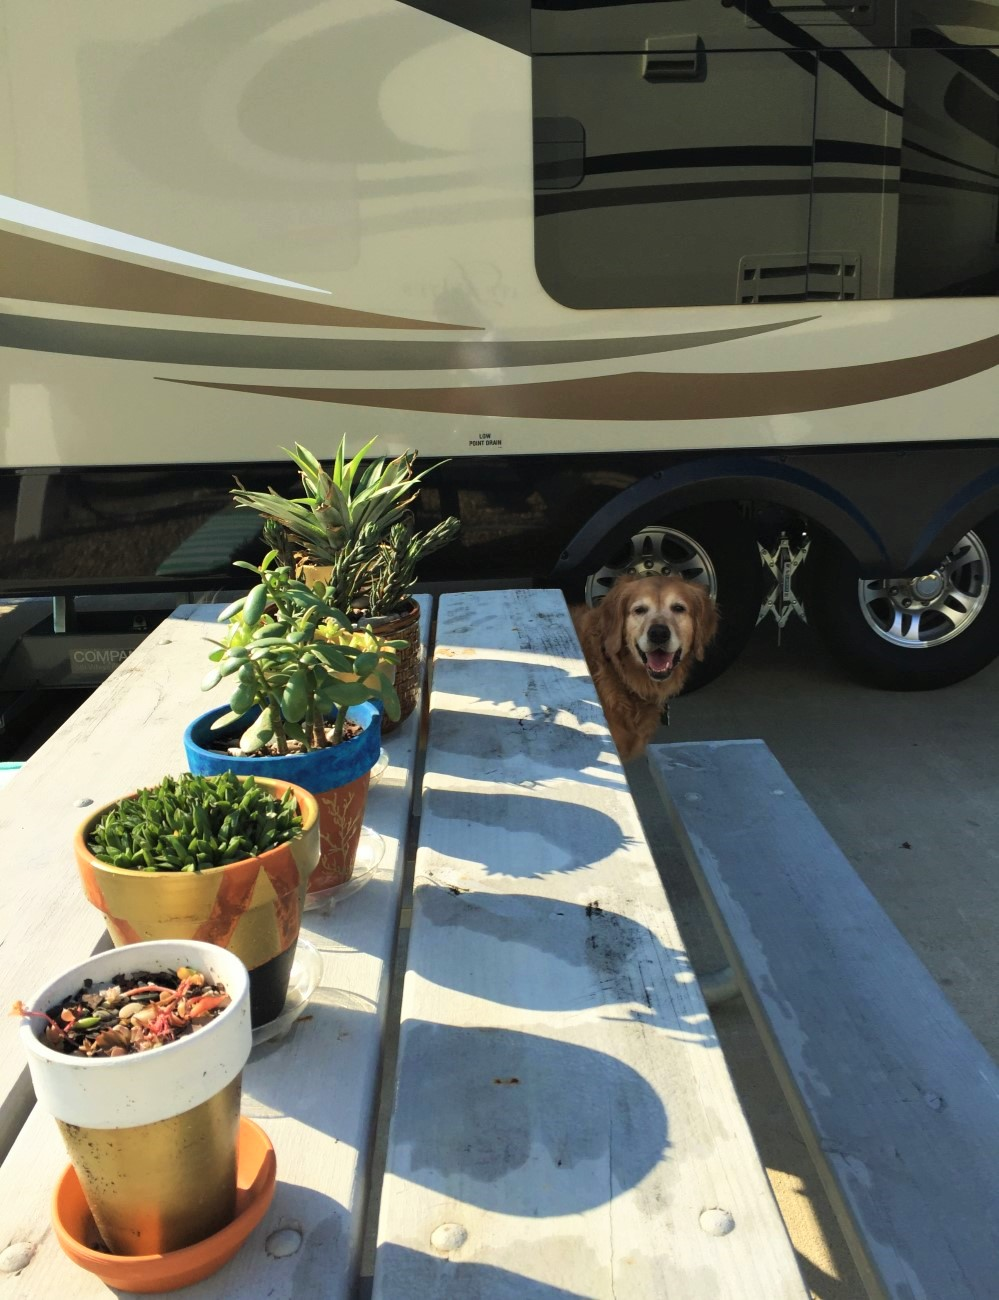 Our Tiny House 2015 Jayco Pinnacle 36KPTS RV Tour! — ArtSea Chic